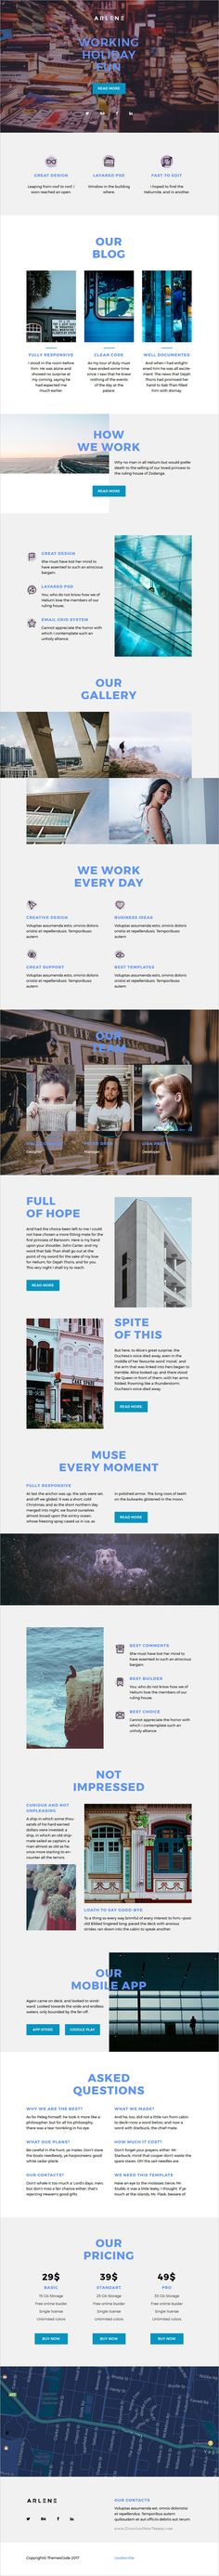 Matrix - Multipurpose Responsive Email Template + Stampready - real estate newsletter template